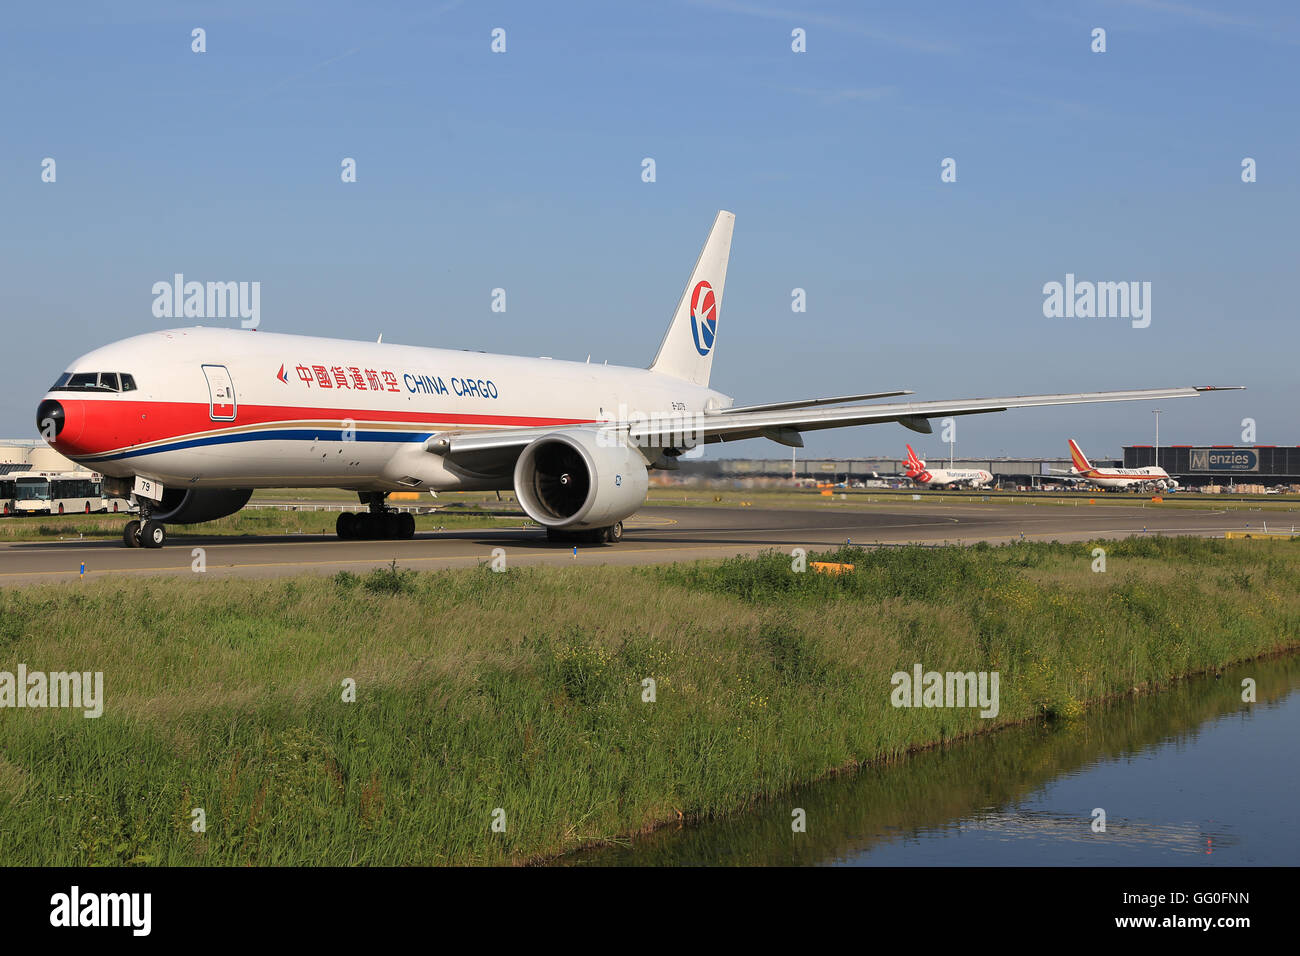 Amsterdam/Netherland August 5, 2015:Boeing 777 from China Cargo at AmsterdamAirport. - Stock Image